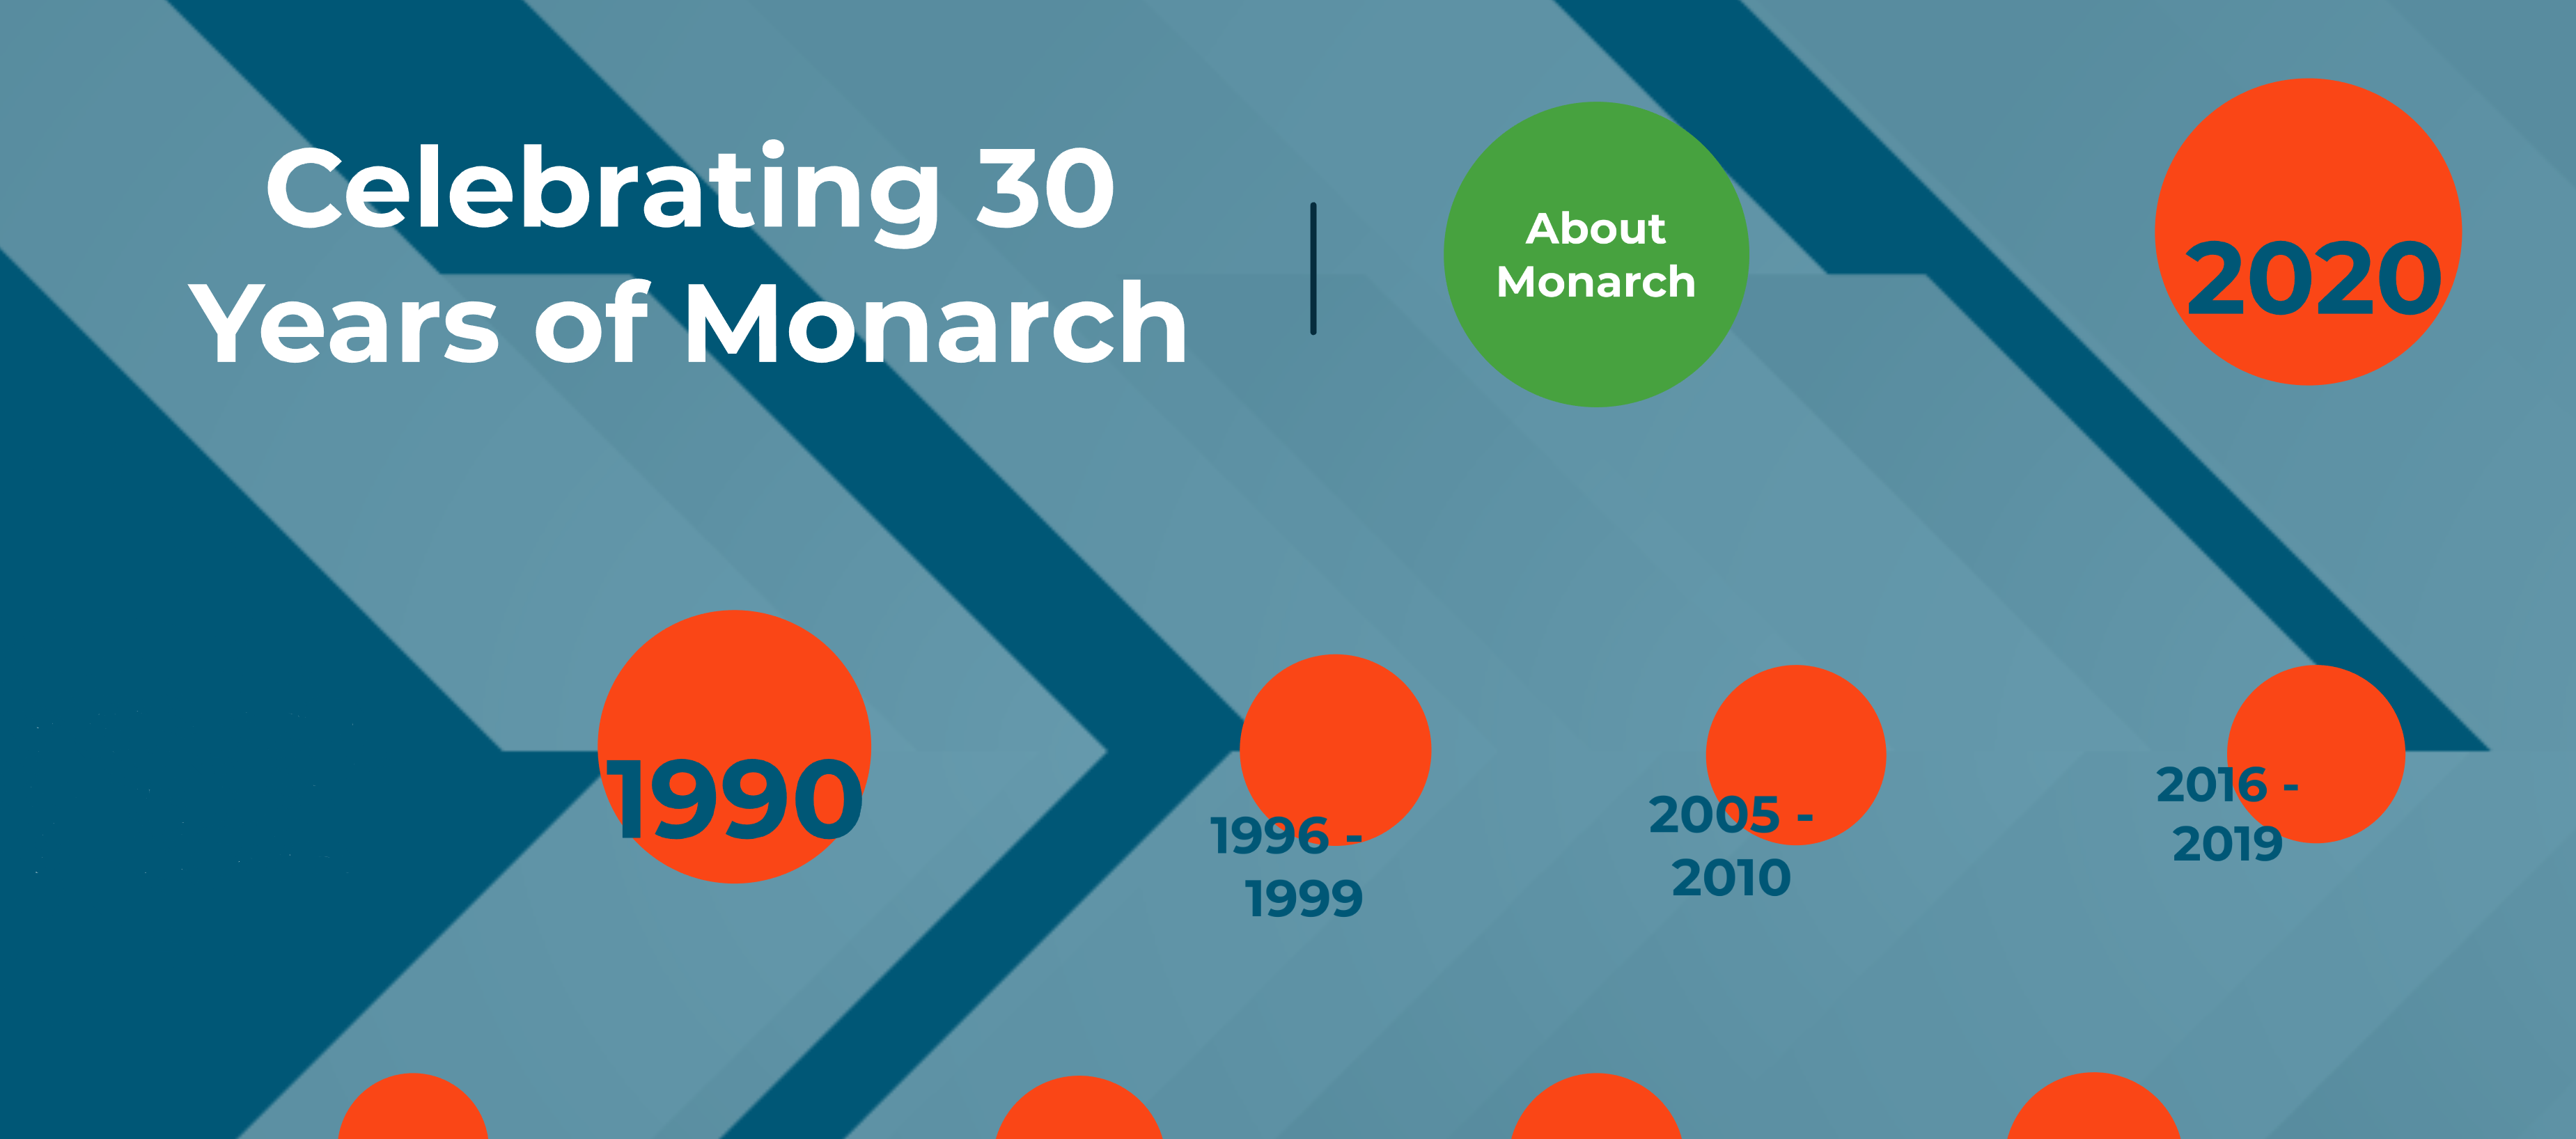 Monarch 2020 - 30 years